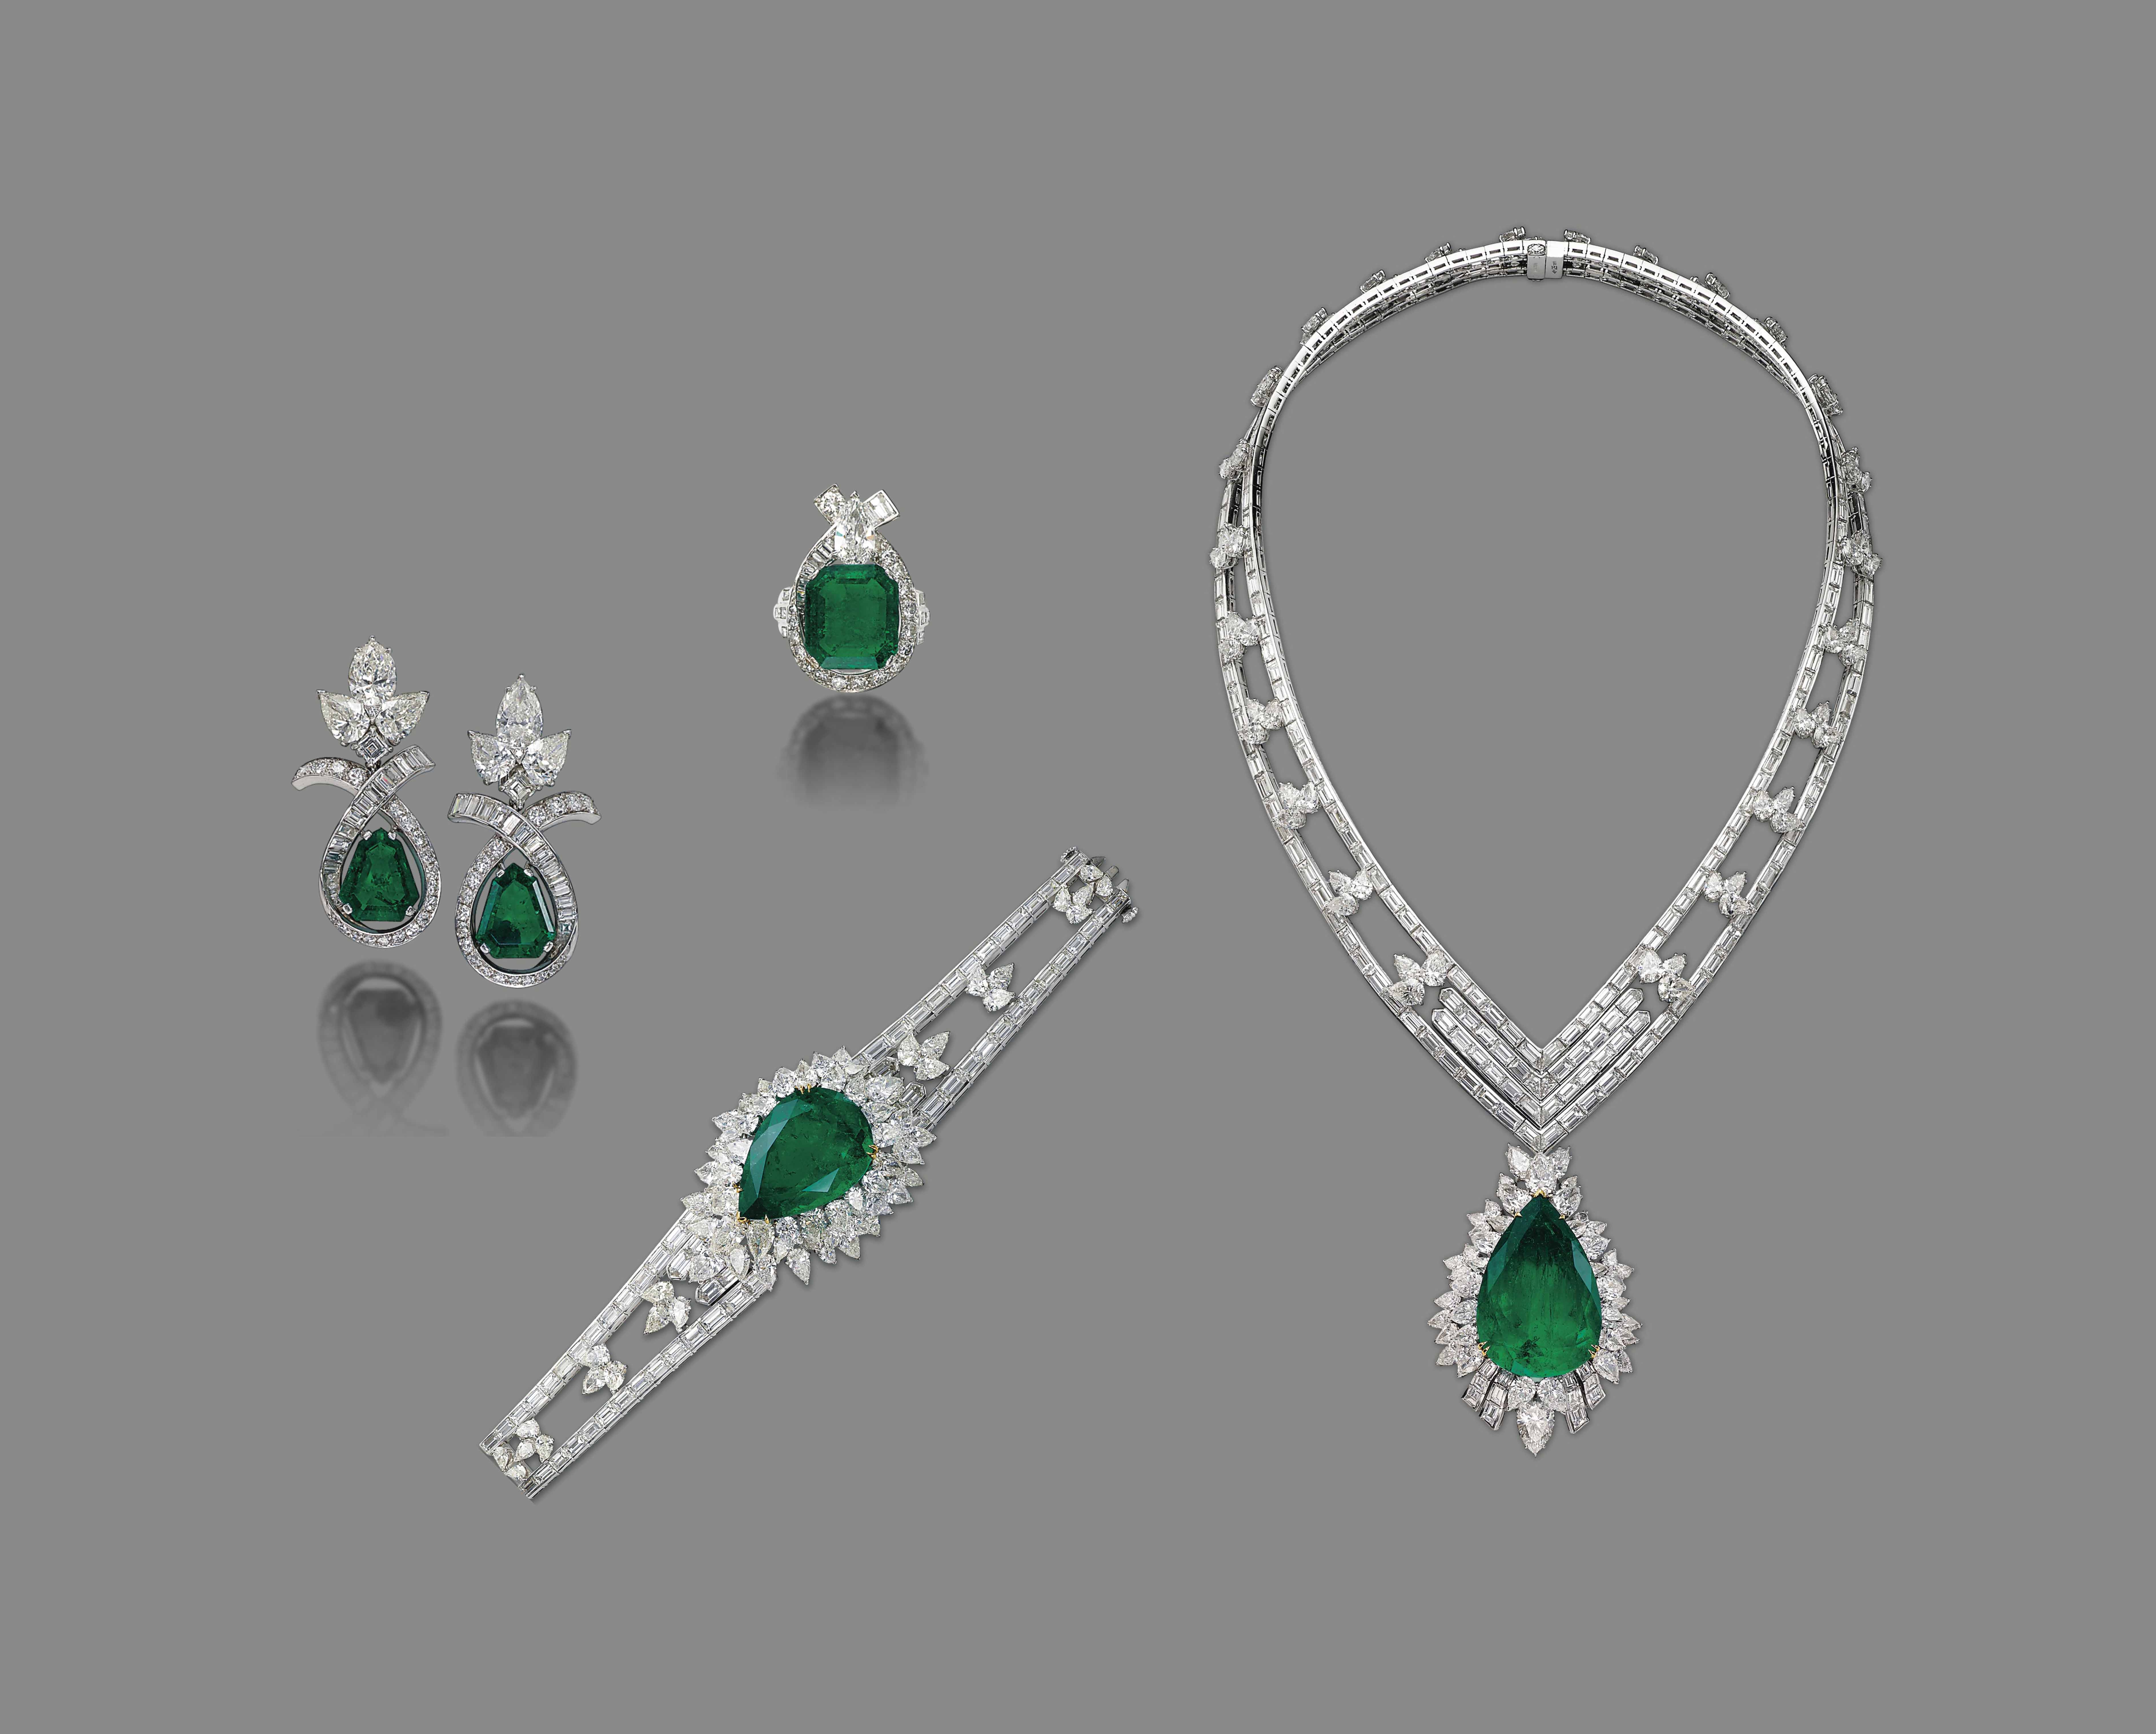 A SET OF EMERALD AND DIAMOND JEWELLERY, BY MOUAWAD